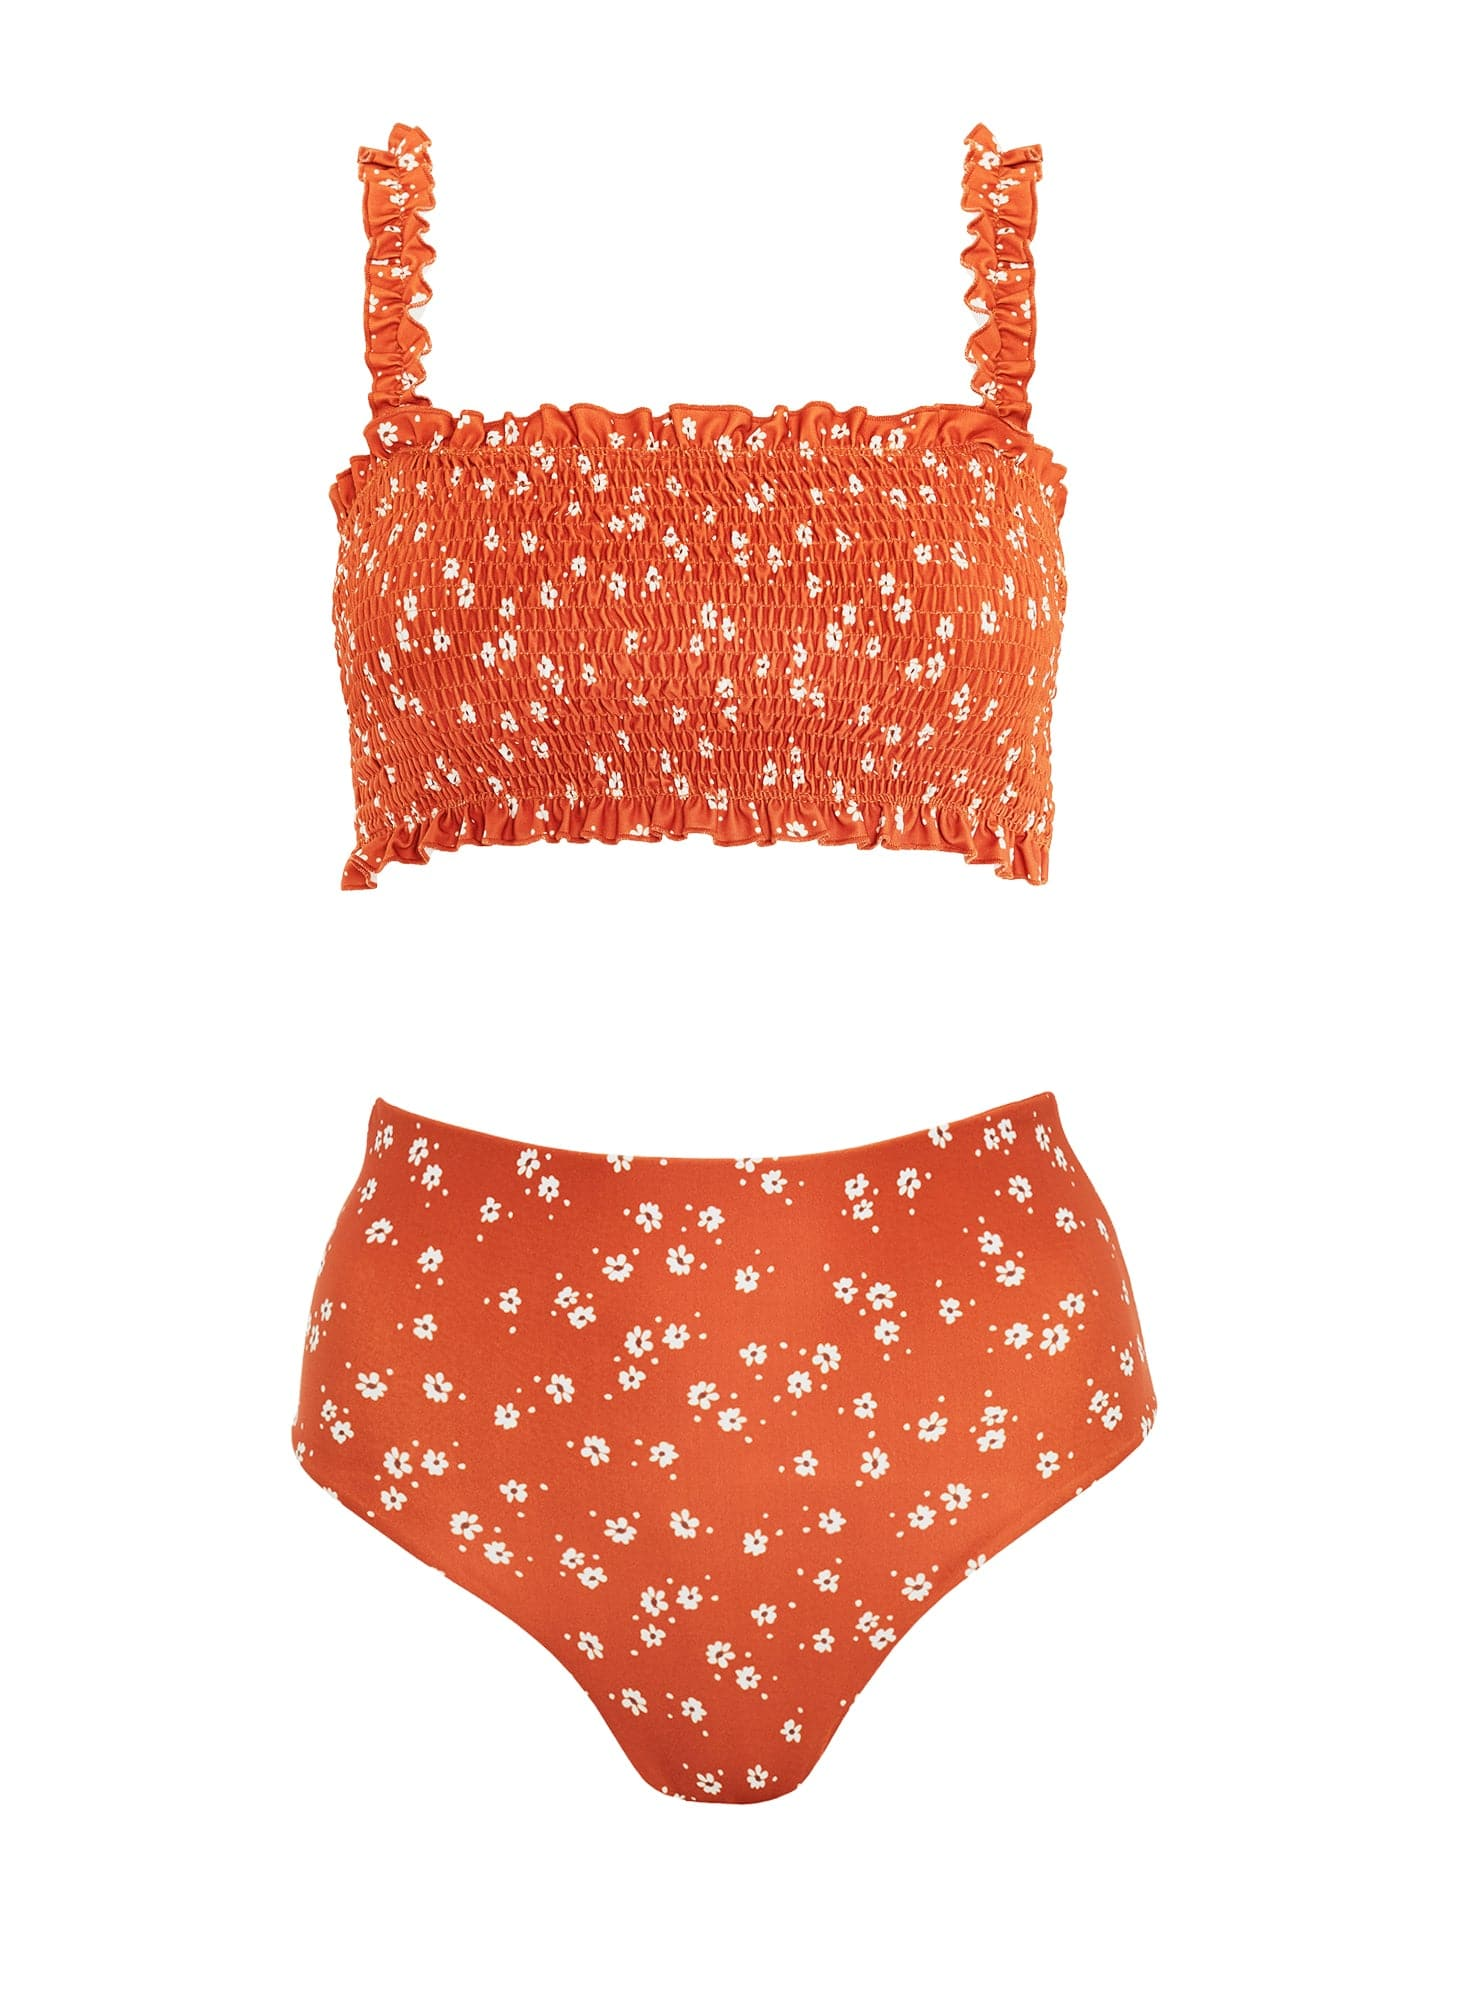 BETINA FLORAL PRINT - ORANGE - BETTINE BIKINI